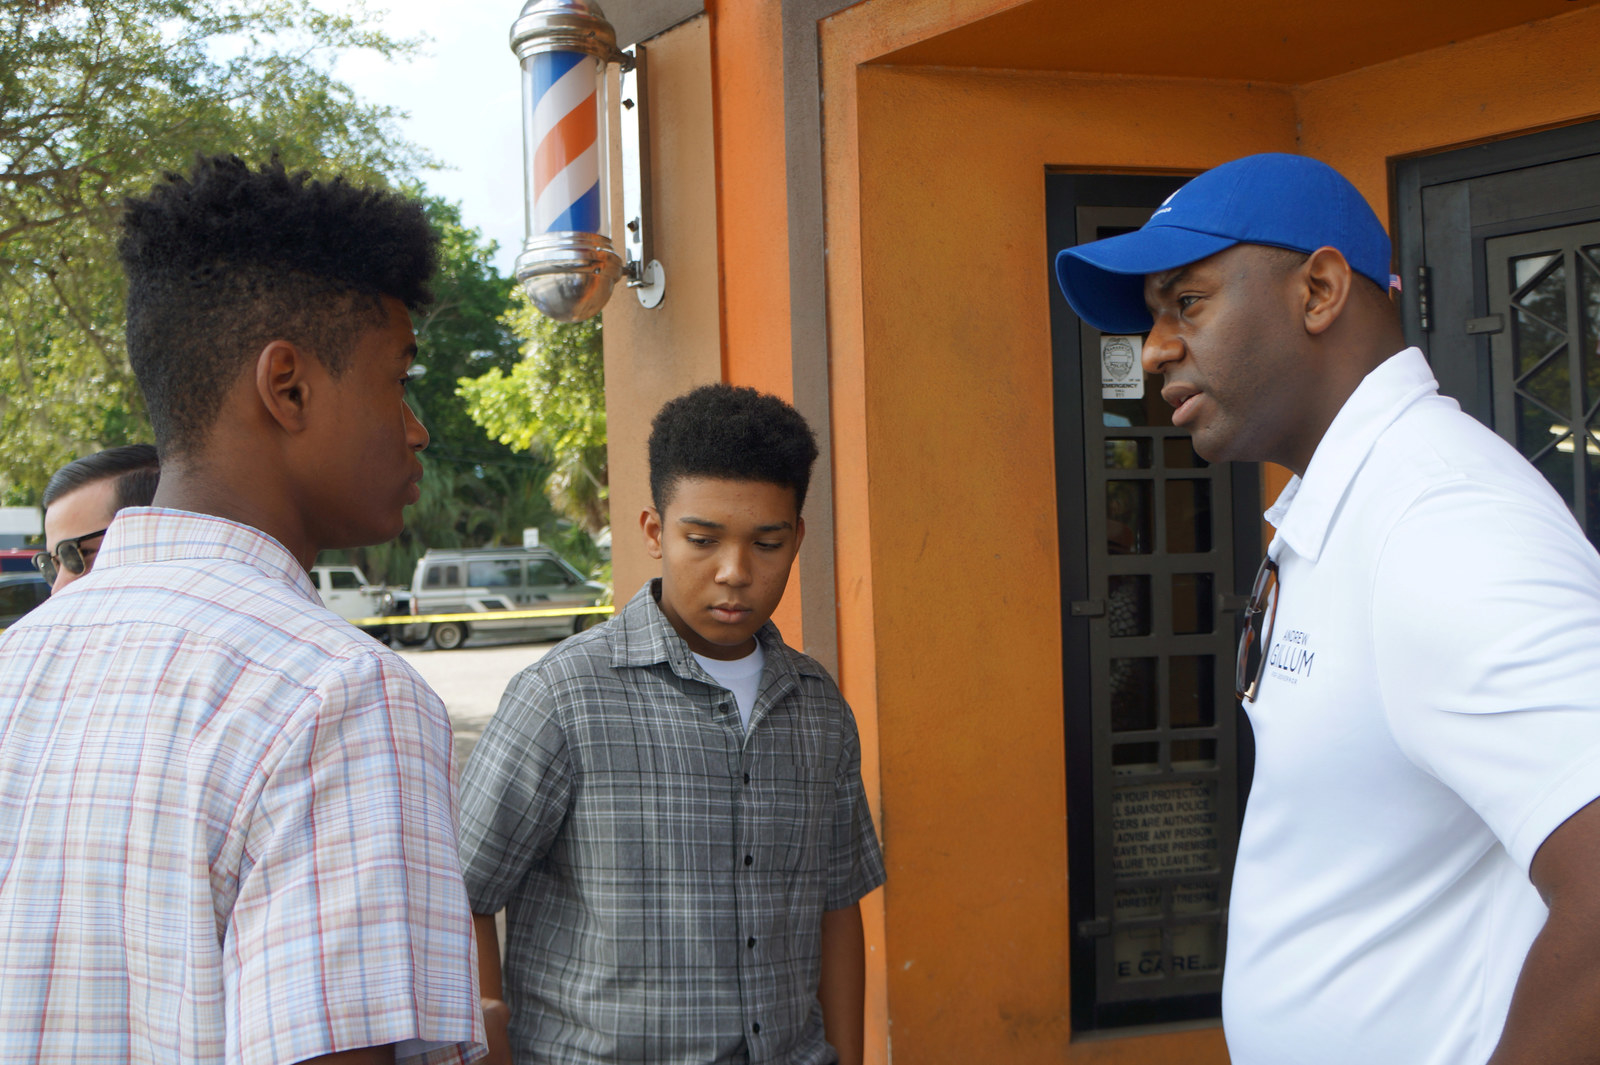 Gillum talking with voters on a tour of barbershops in Sarasota, Florida, on July 18, 2018.